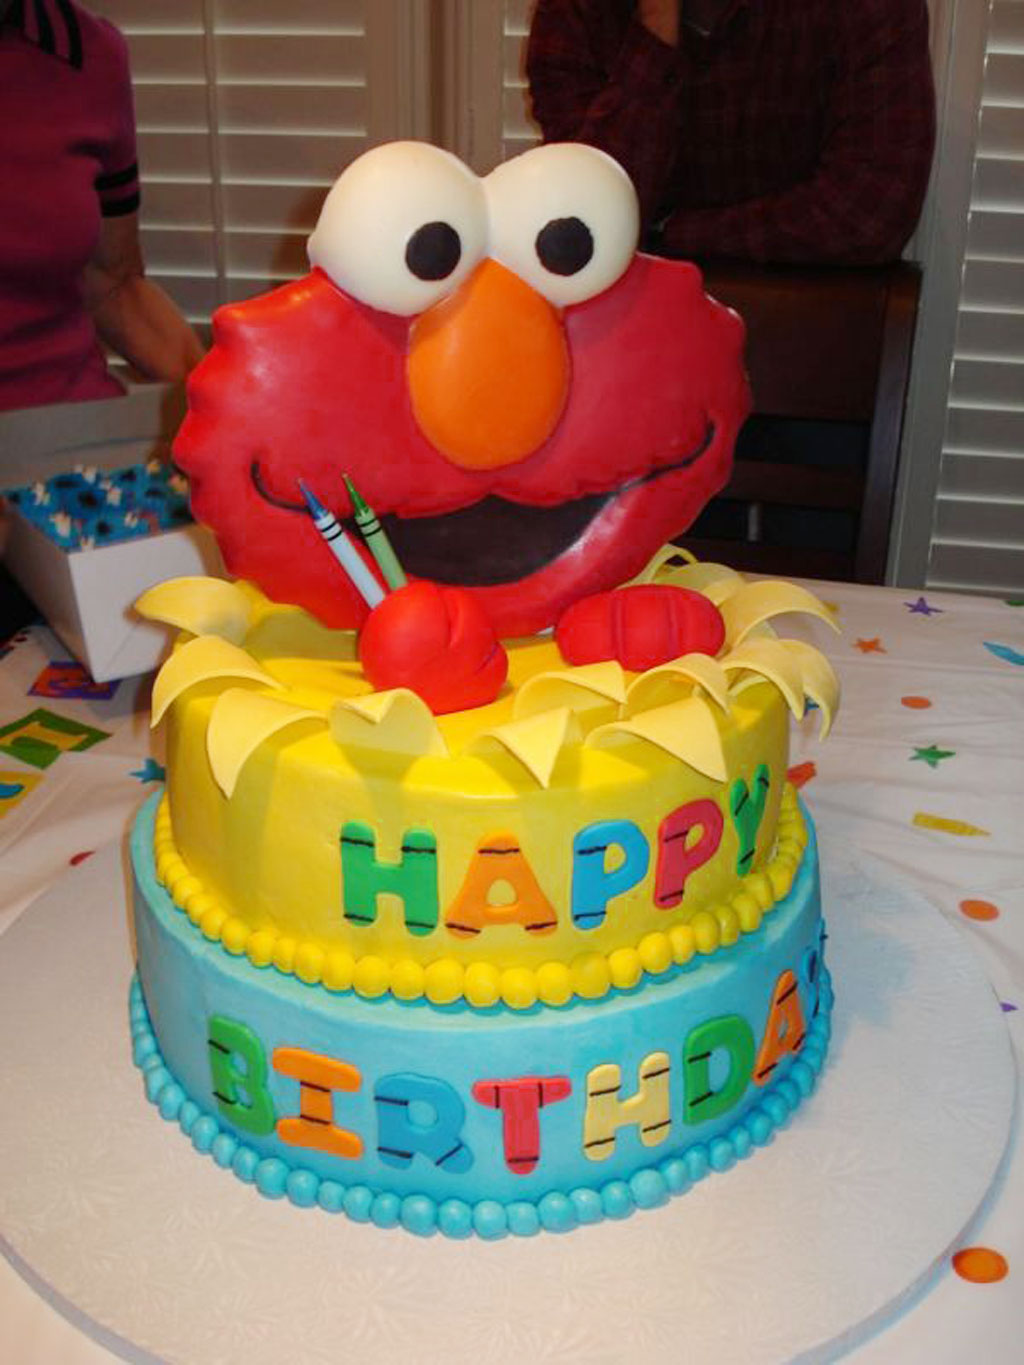 Elmo Design Birthday Cake : Elmo Birthday Cakes Design 2 Birthday Cake - Cake Ideas by ...